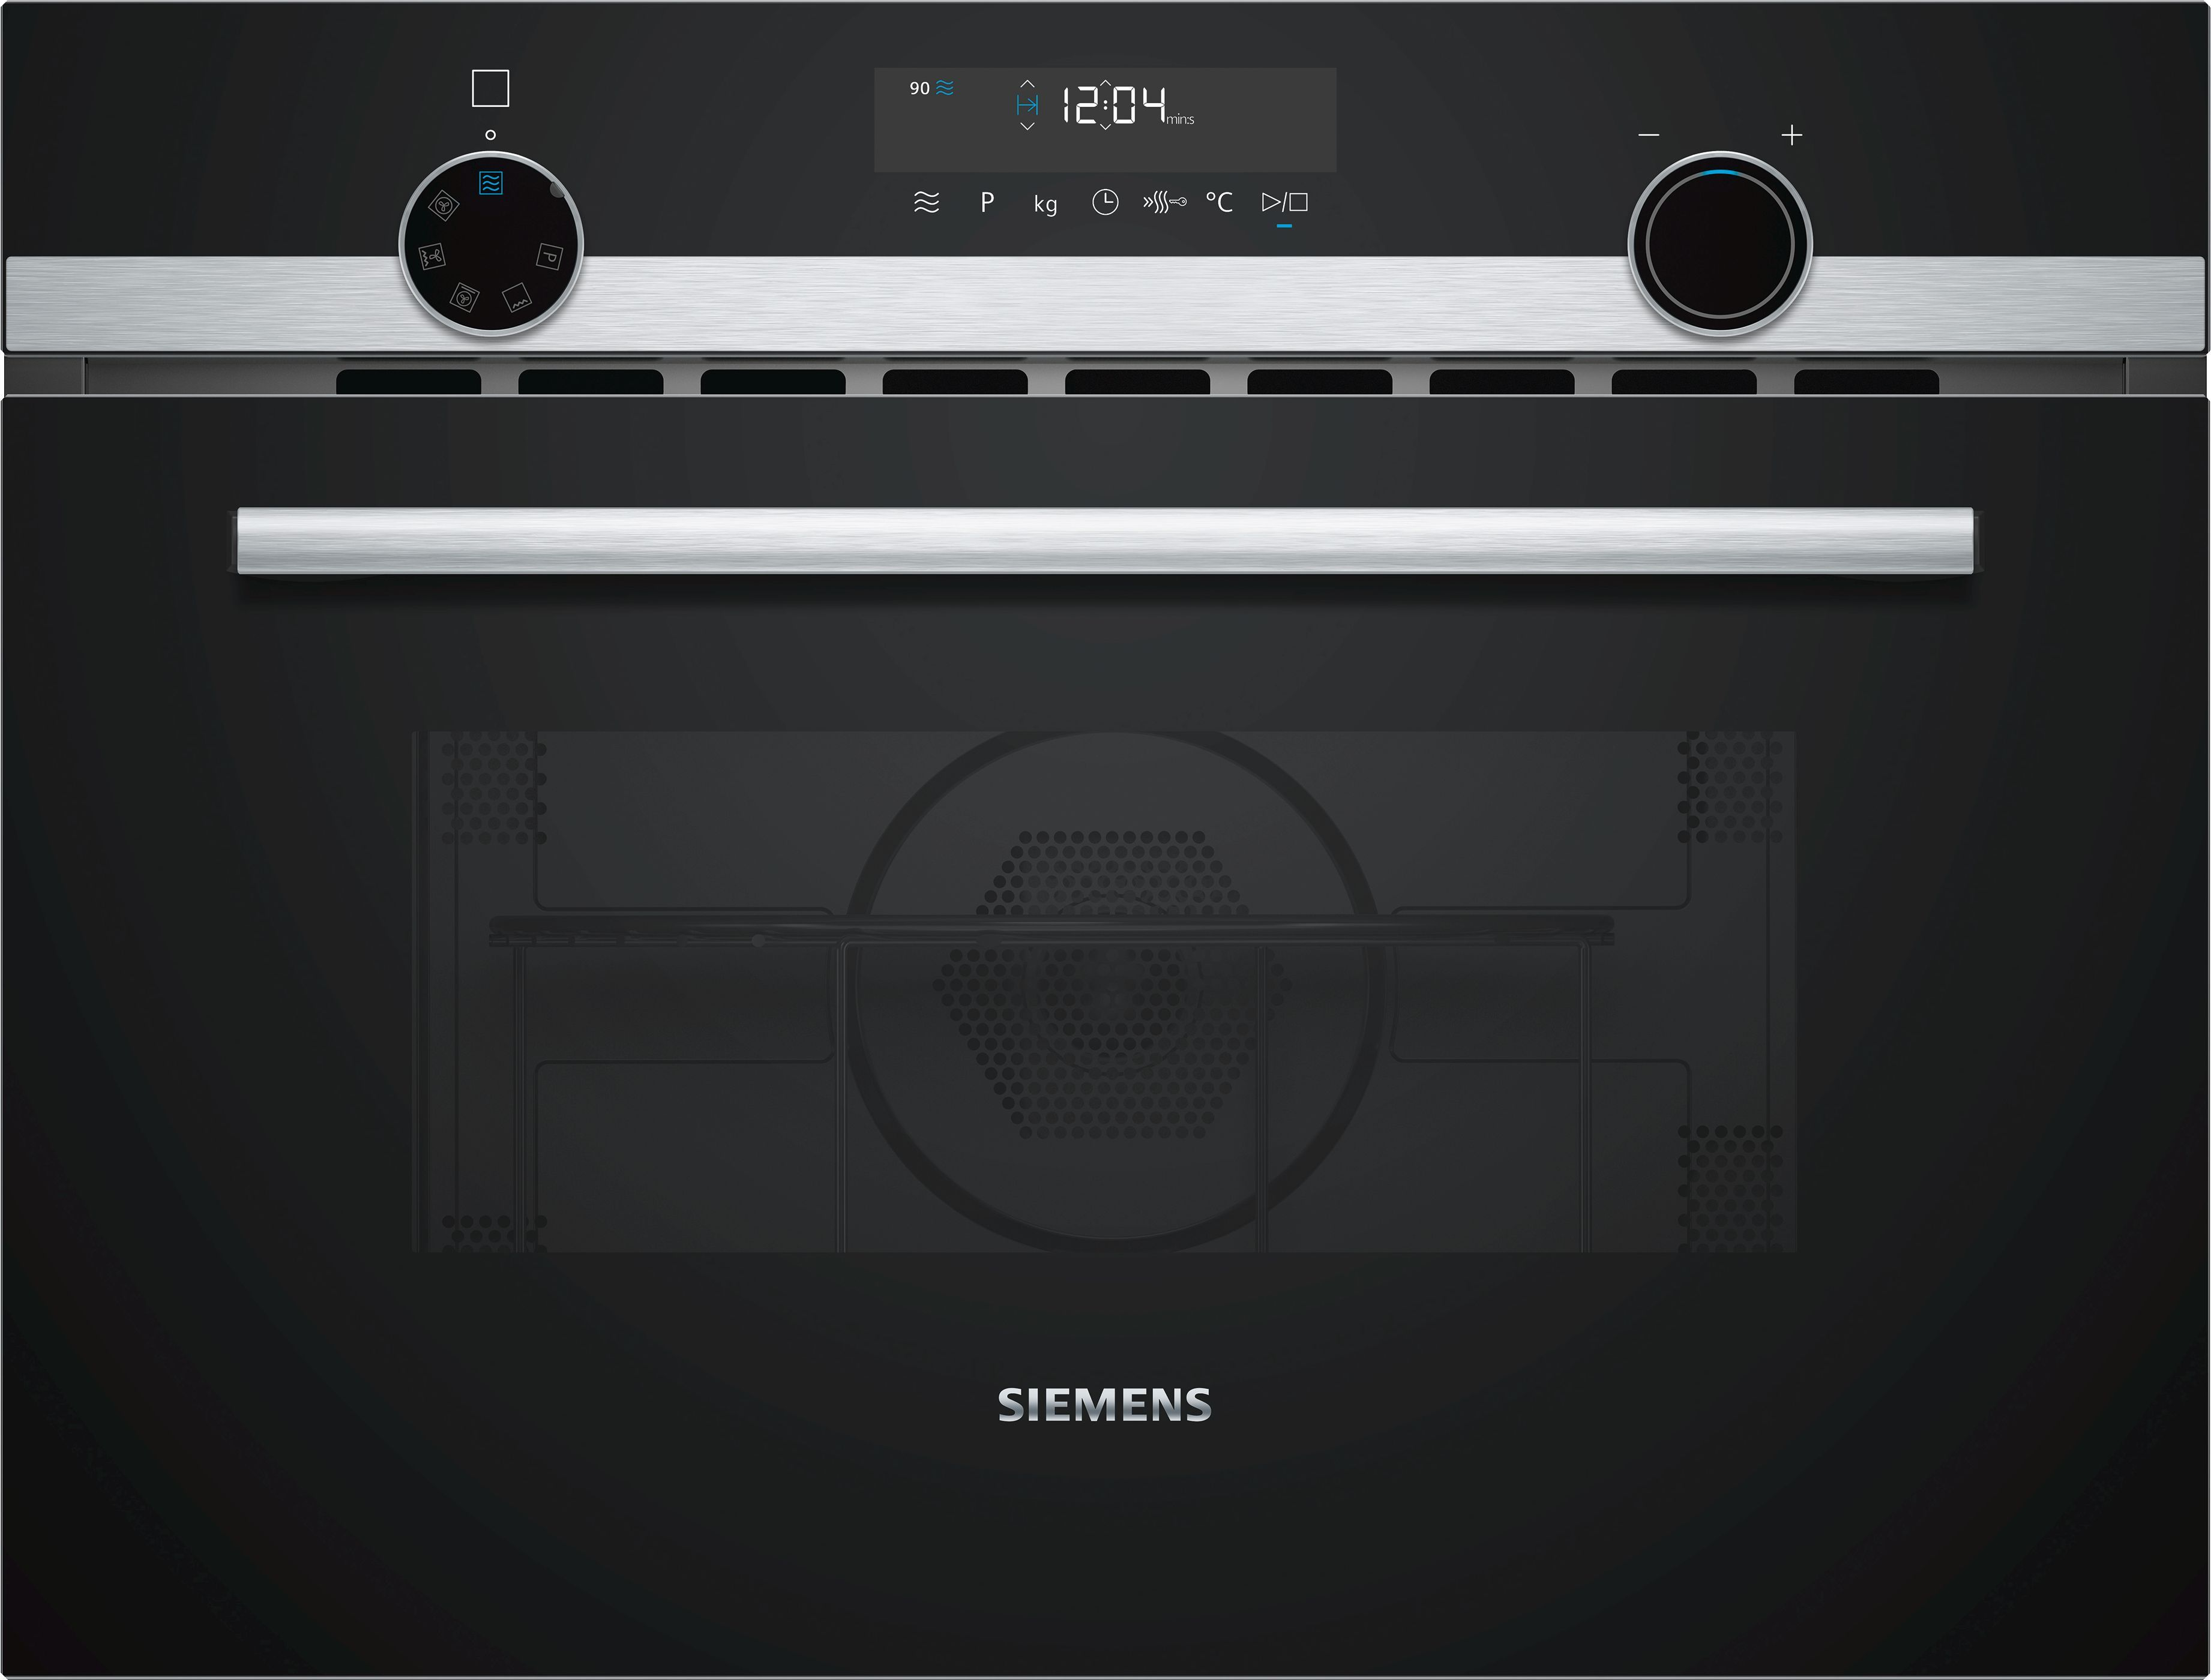 Built-in Microwave With Hot Air Function Brand Class Iq500 - Cm585ams0b Siemens